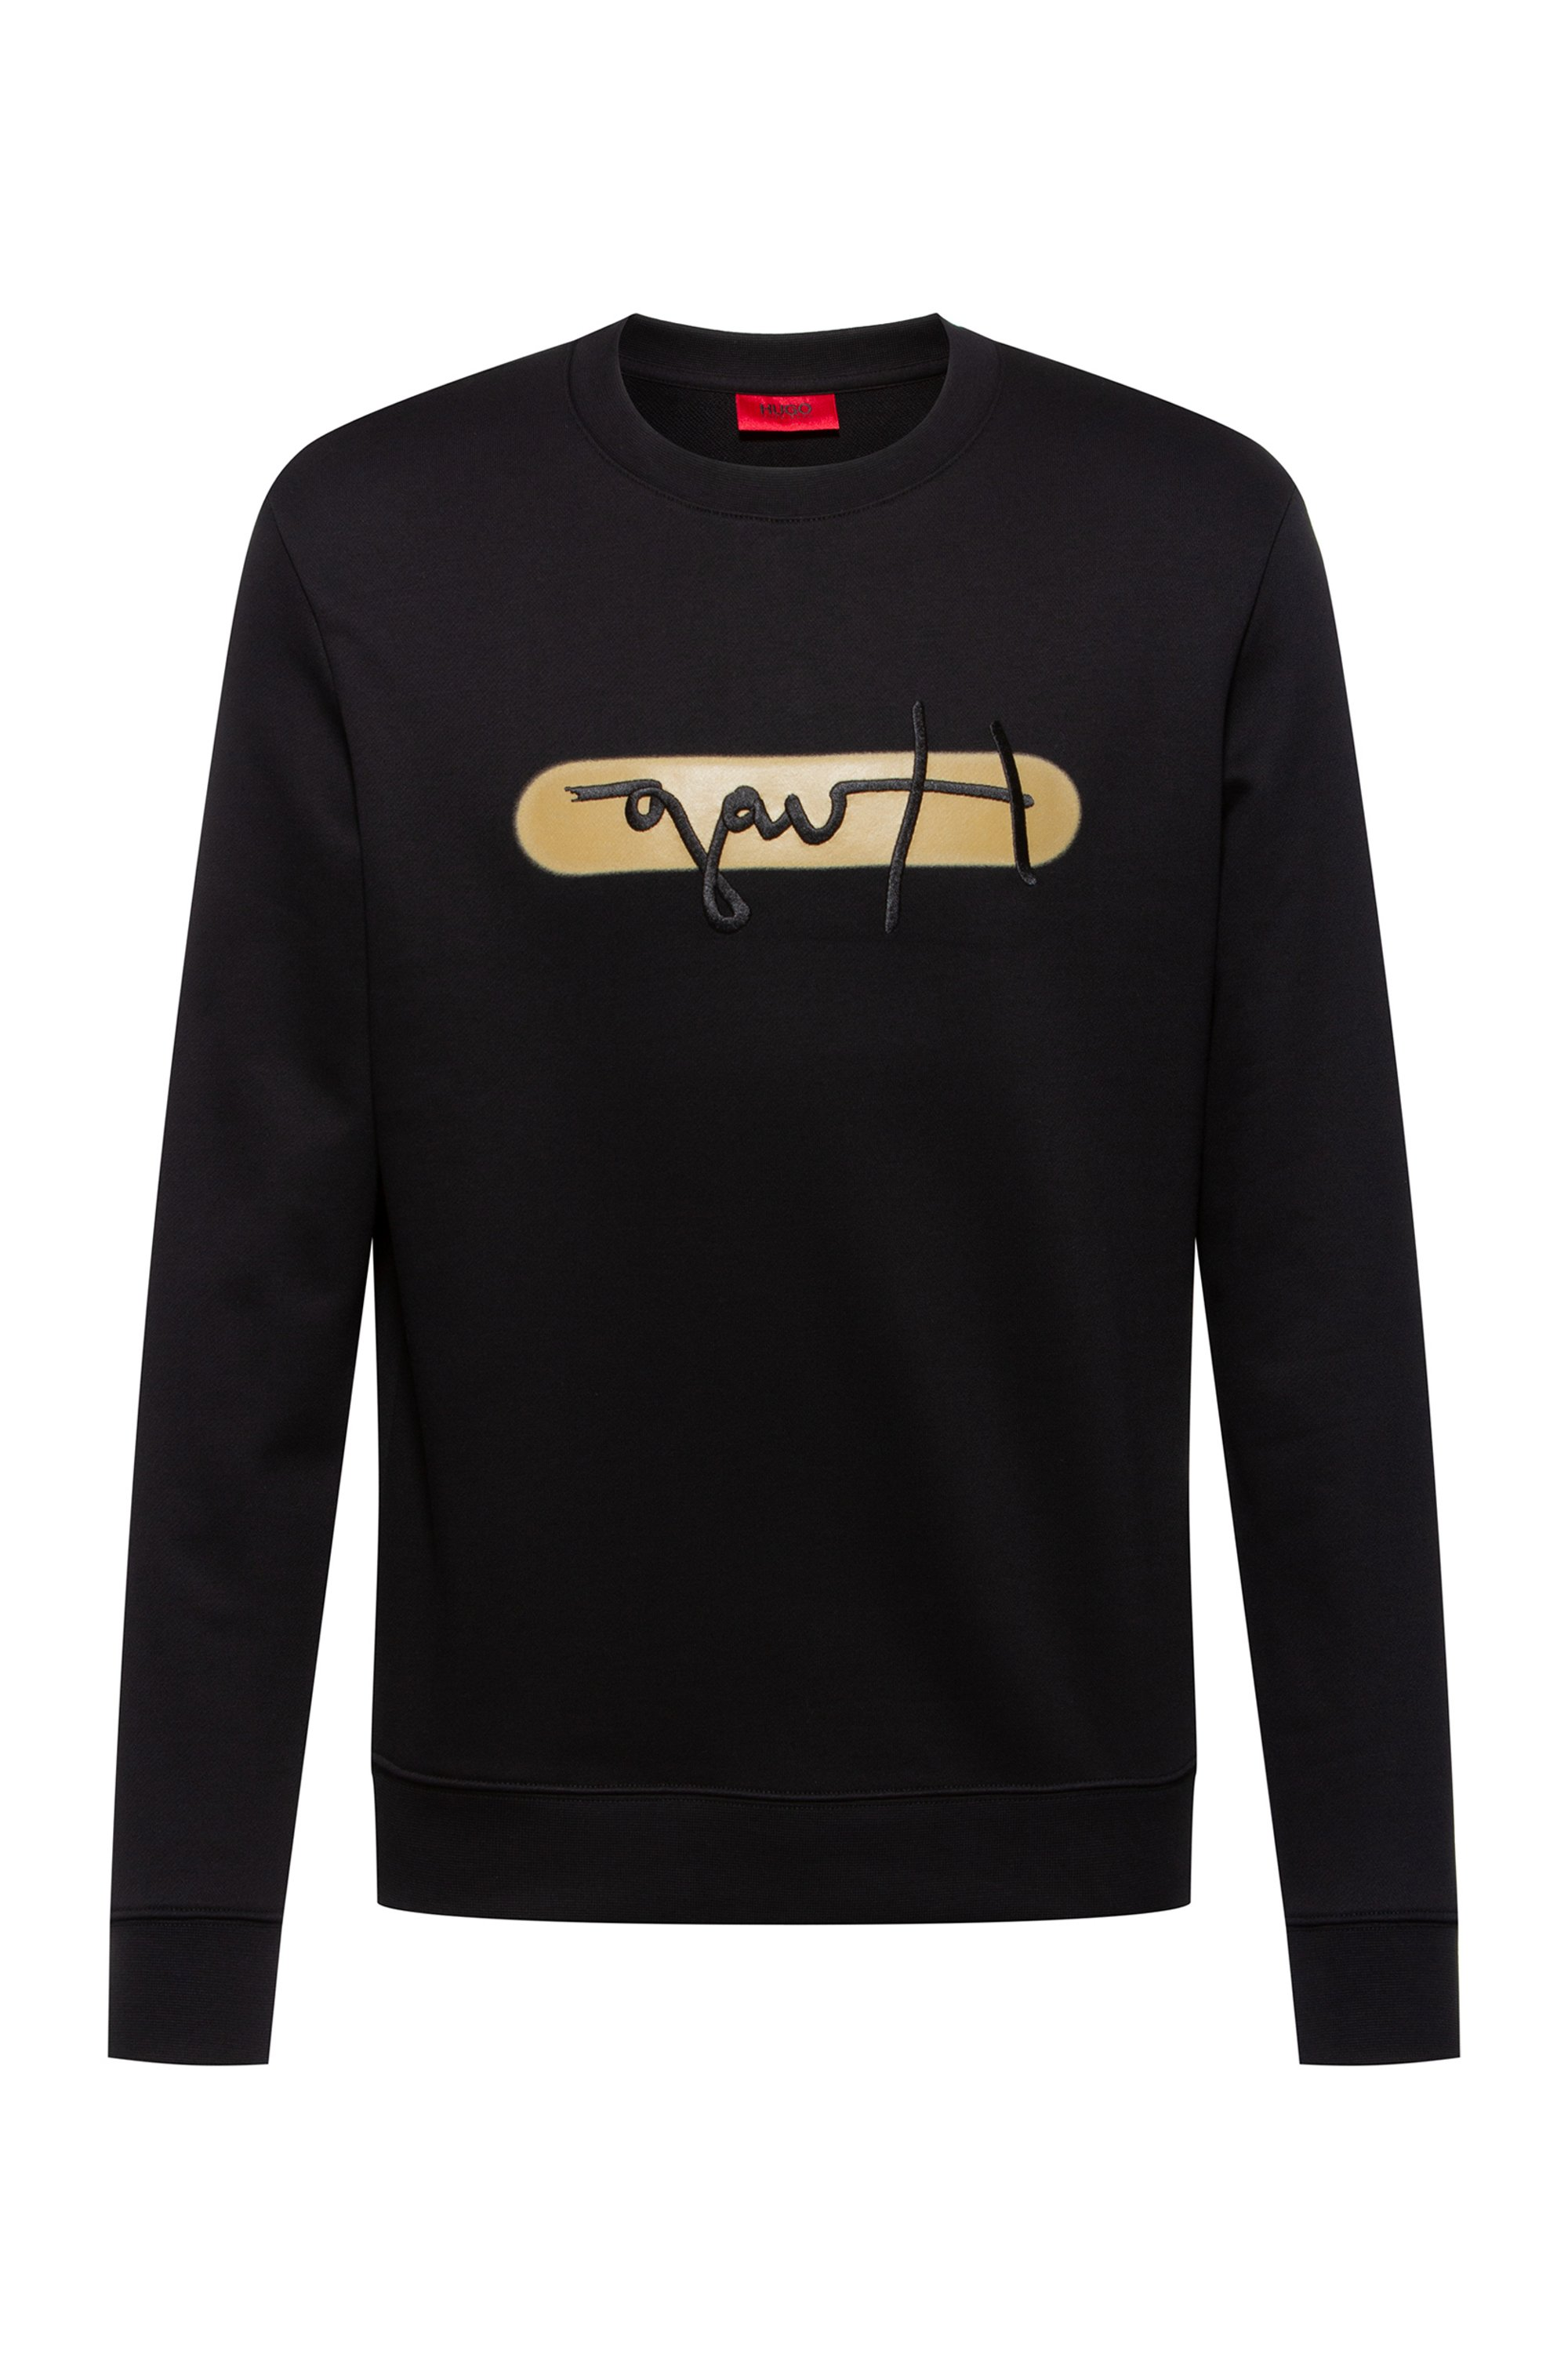 French-terry cotton sweatshirt with new-season logo embroidery, Black